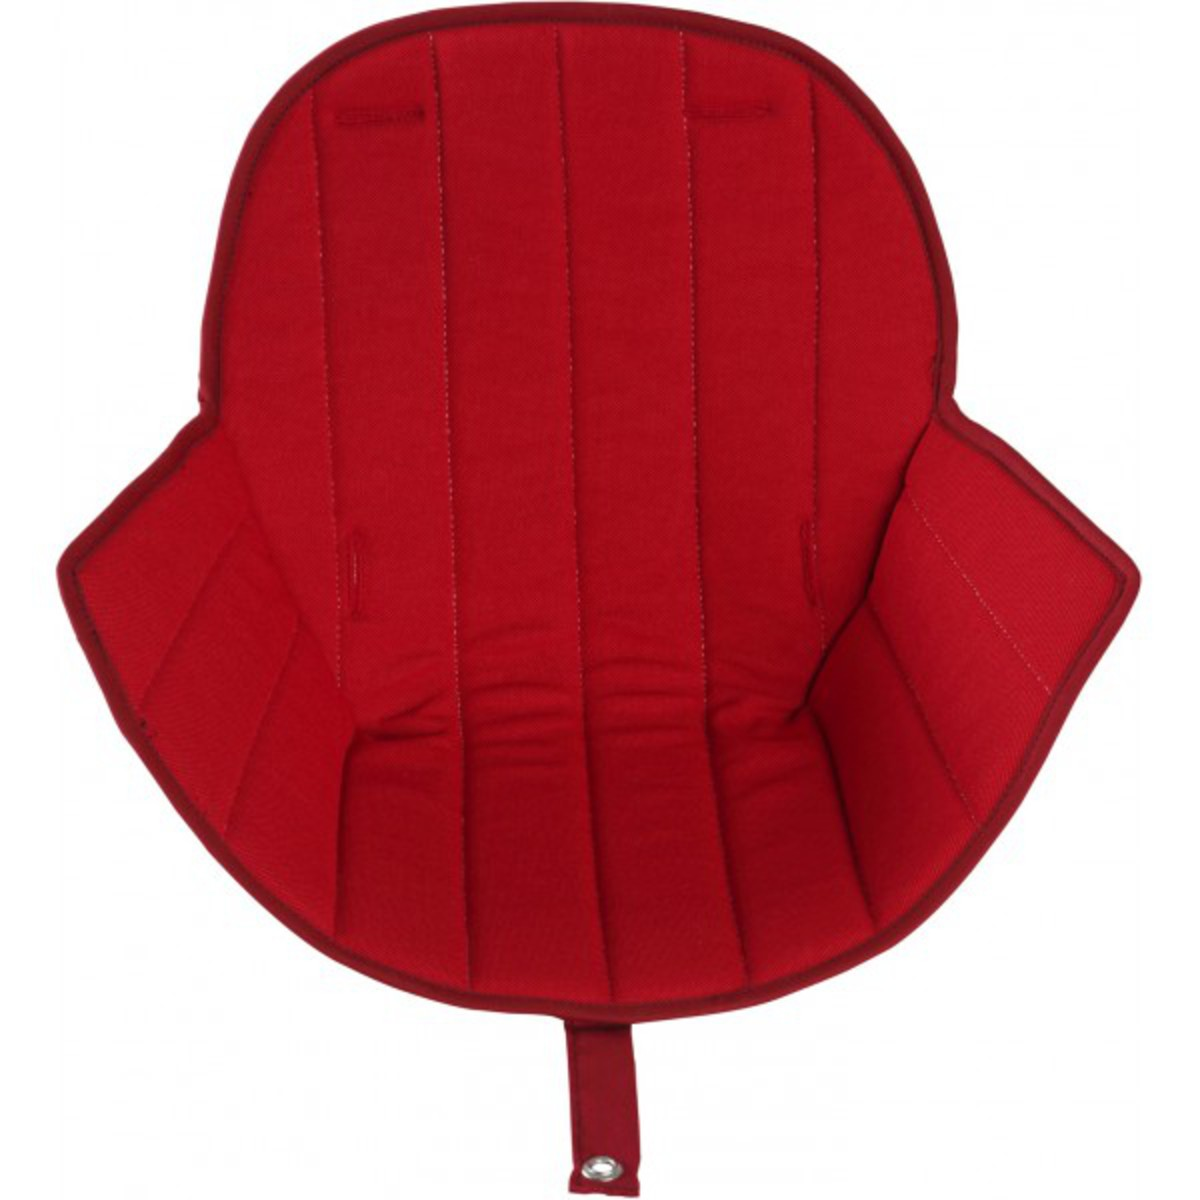 Chaise haute Assise Ovo - Red Assise Ovo - Red